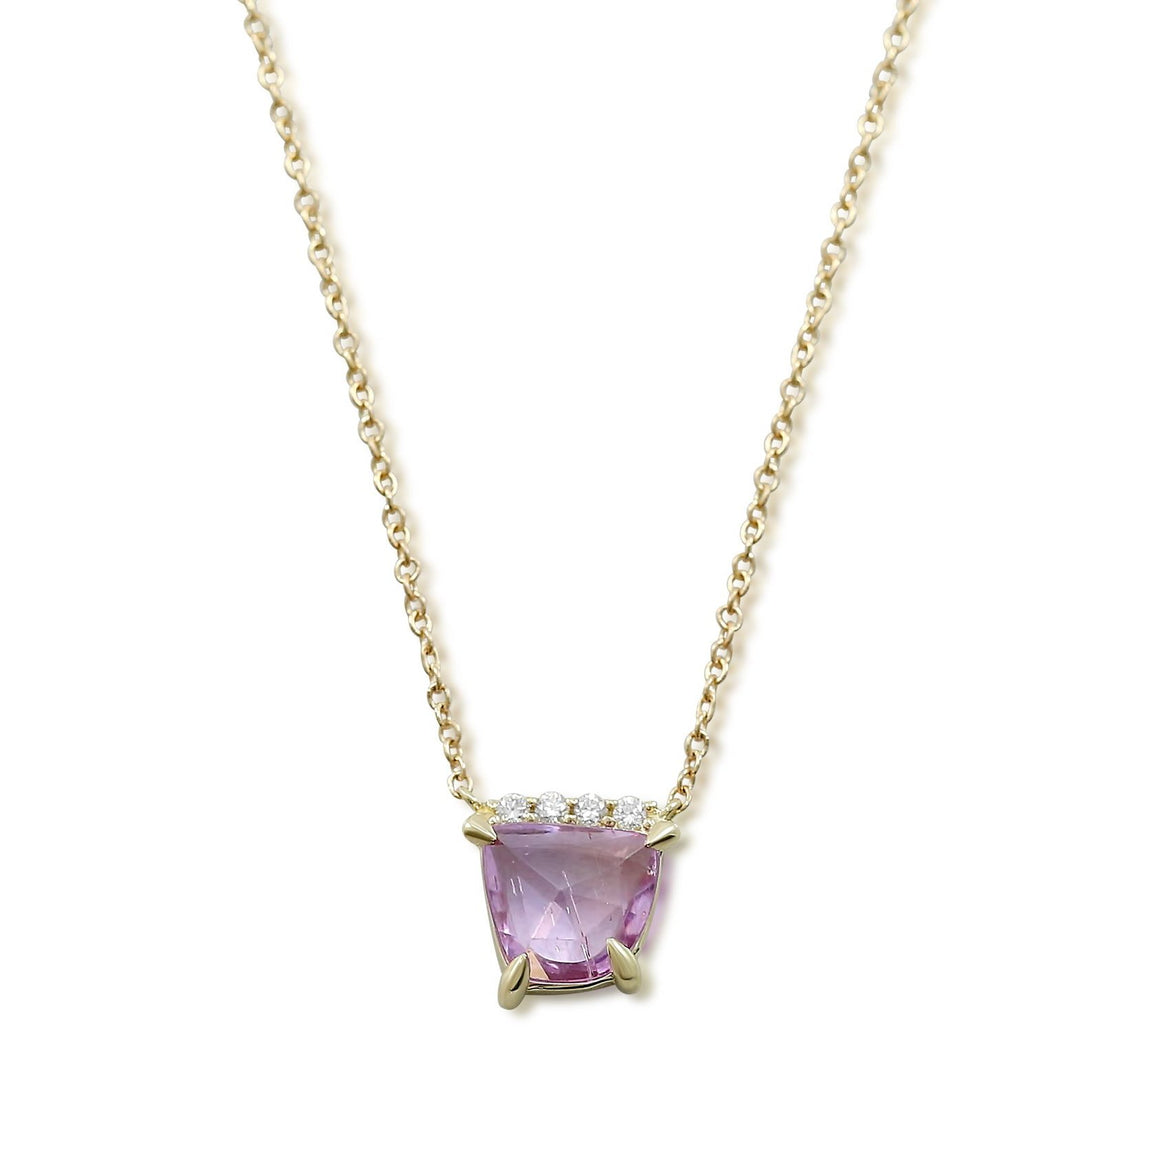 pink sapphire slice necklace with line of white diamonds set in 14k yellow gold with a yellow gold chain